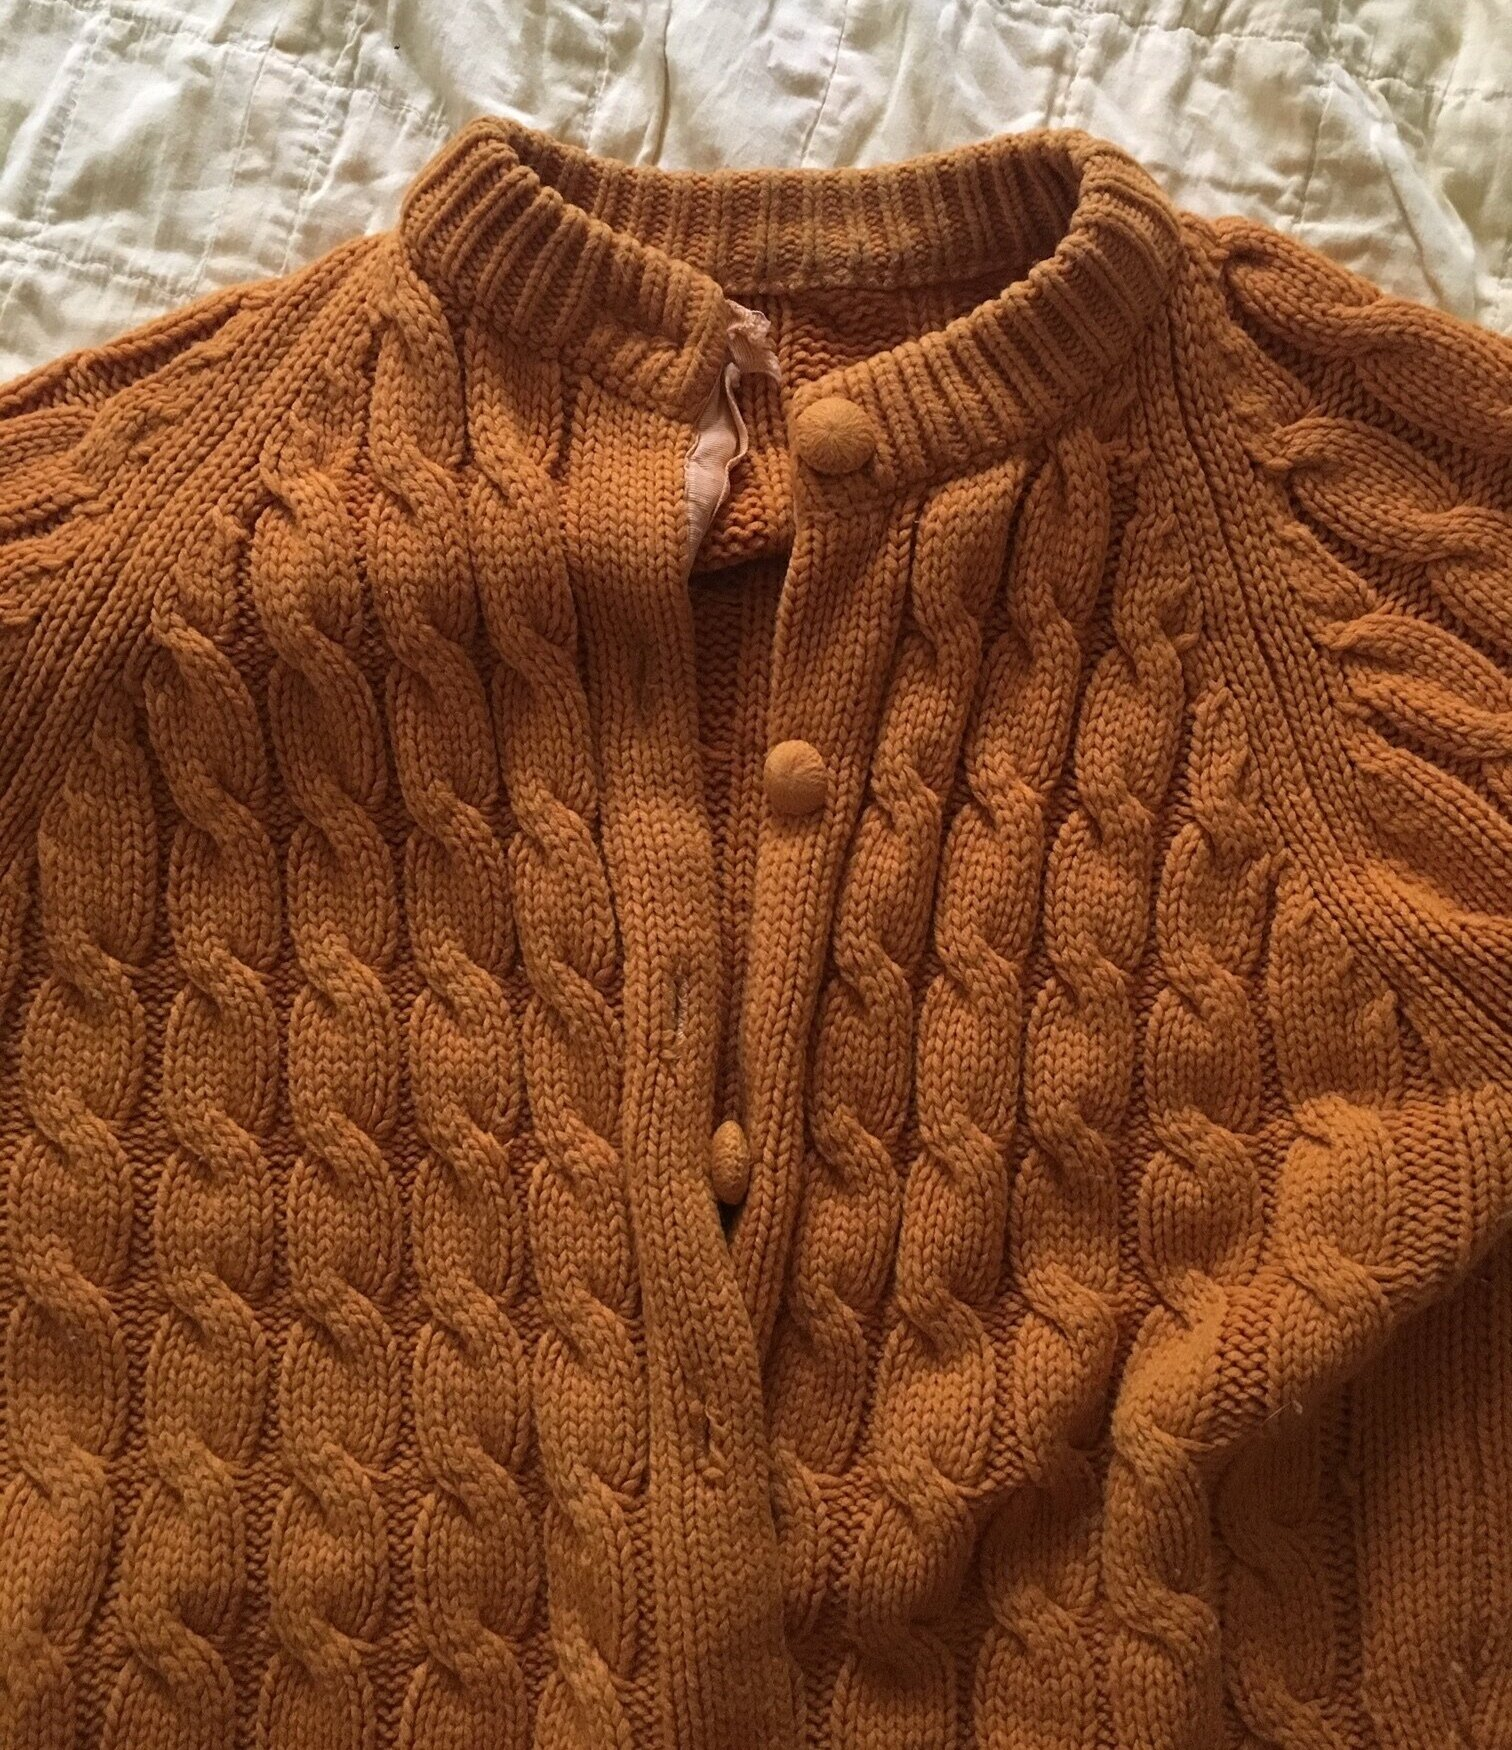 A hand me down sweater that didn't get much wear until Sept, but it's getting wear now.